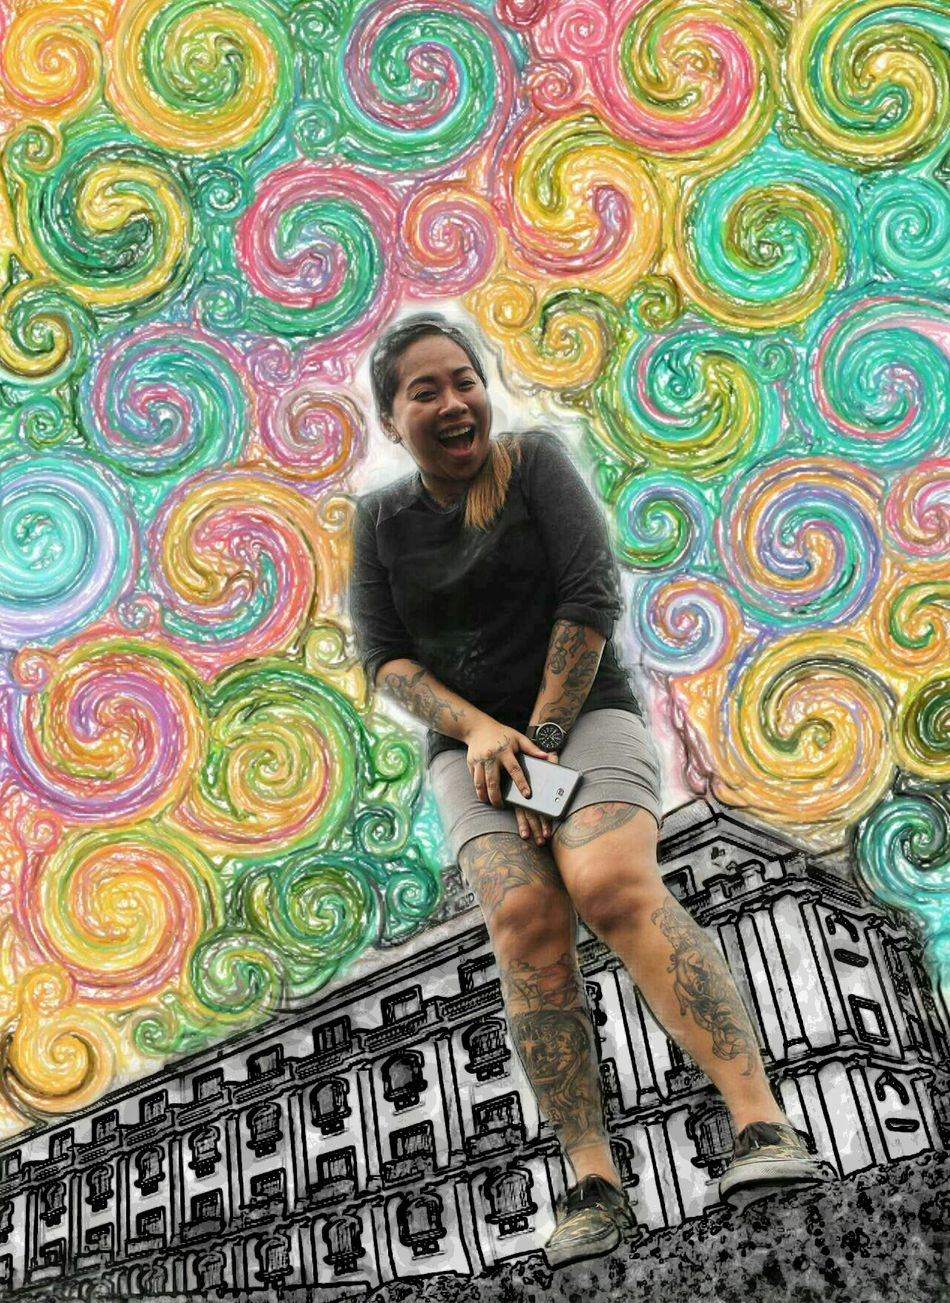 Swirly.. Photooftheday Photoography Taking Photos High Angle View SuperFiltered Outdoors Philippines ThatsMe